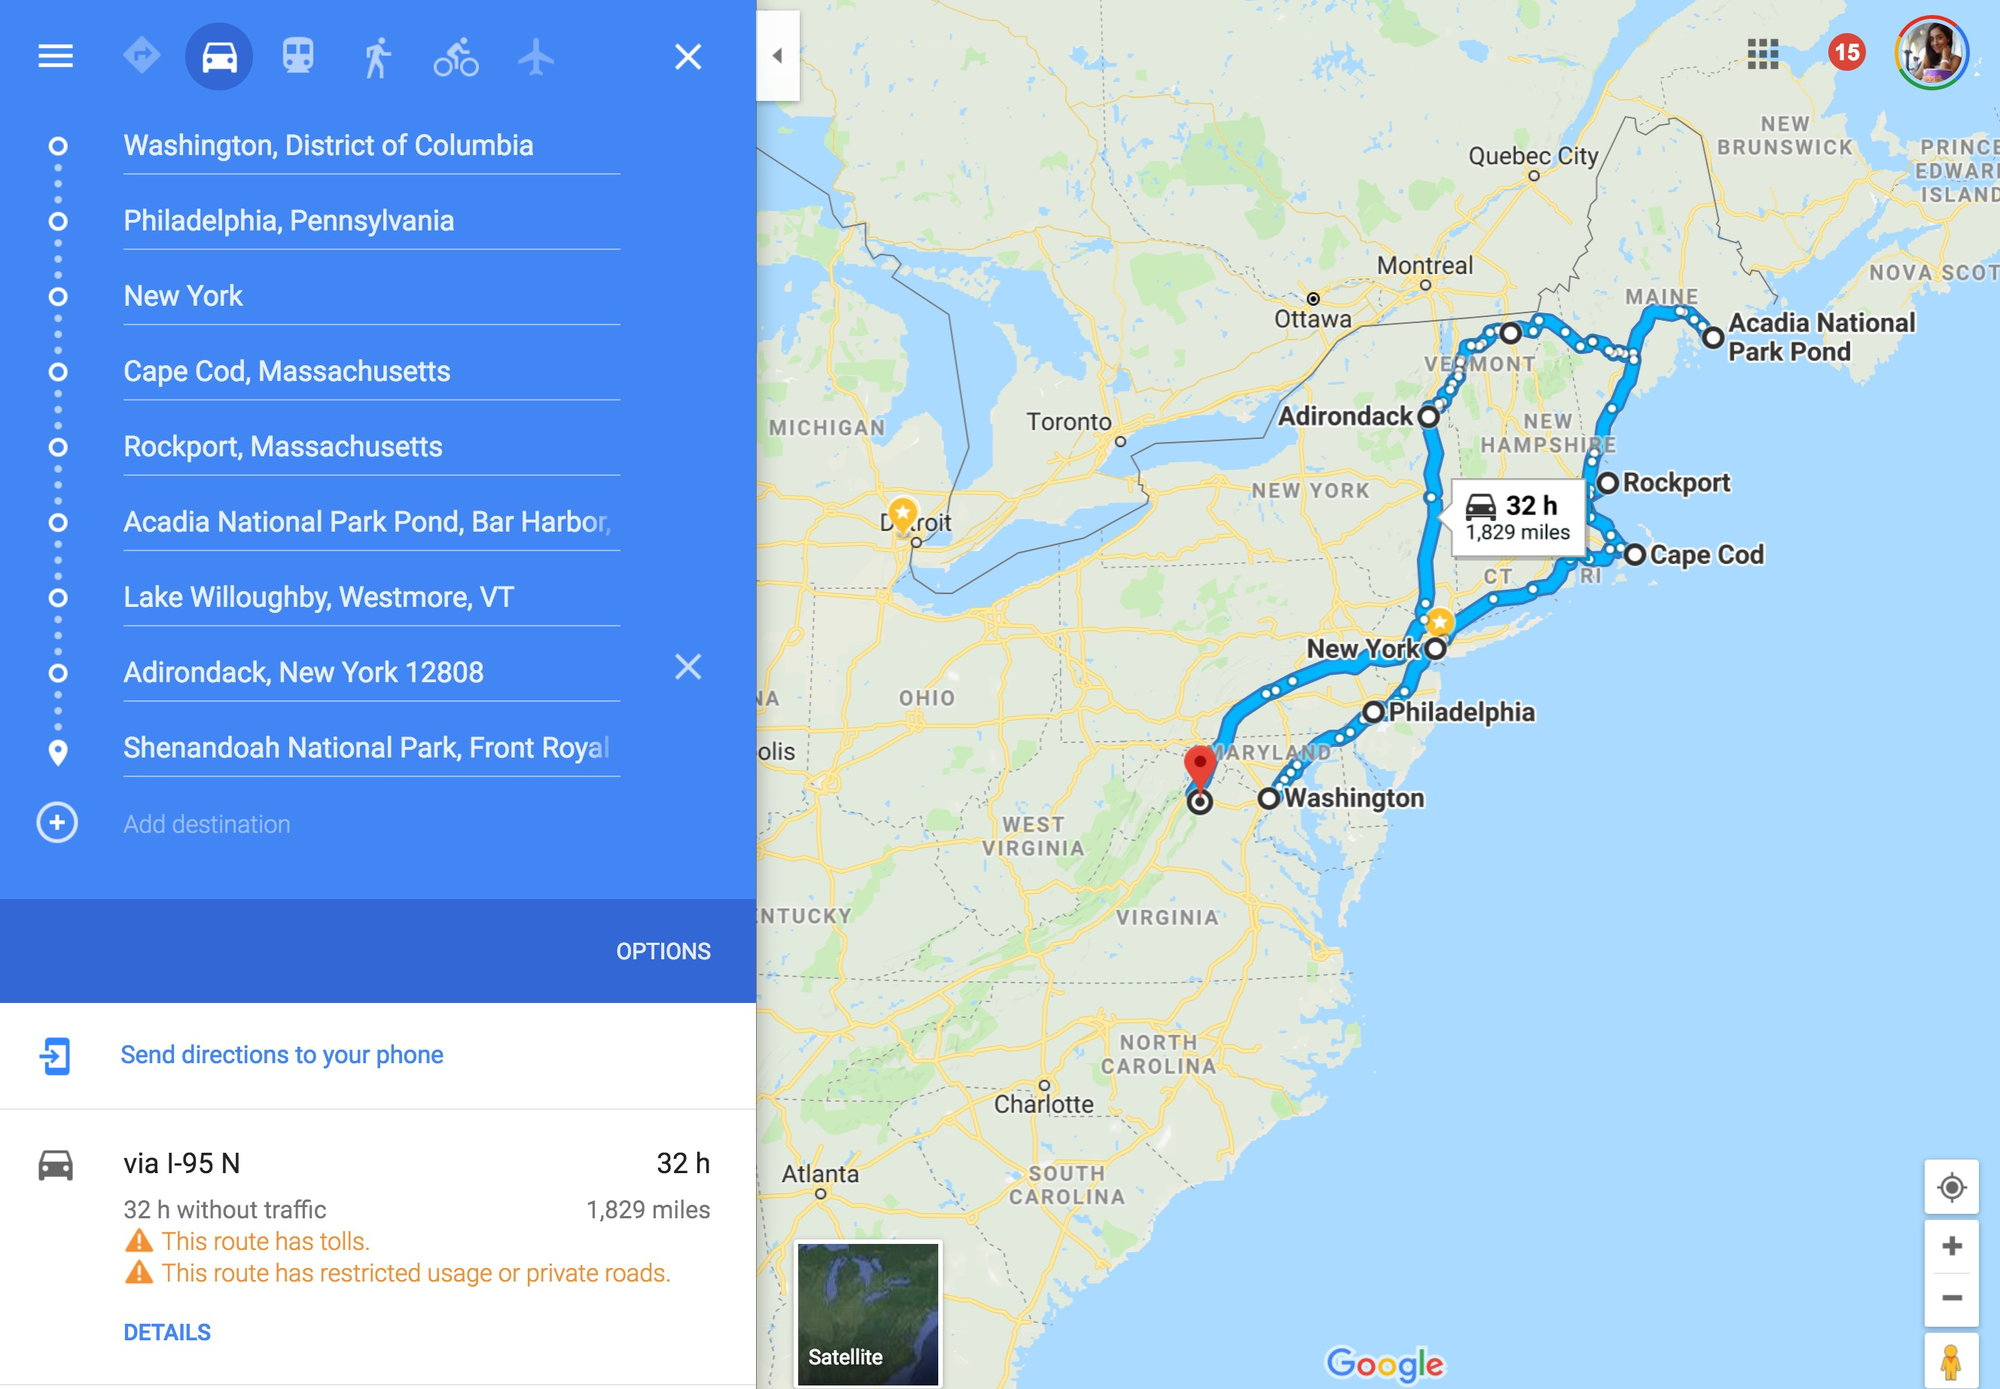 US East Coast Road Trip Itinerary Suggestions - Fodor\'s ...